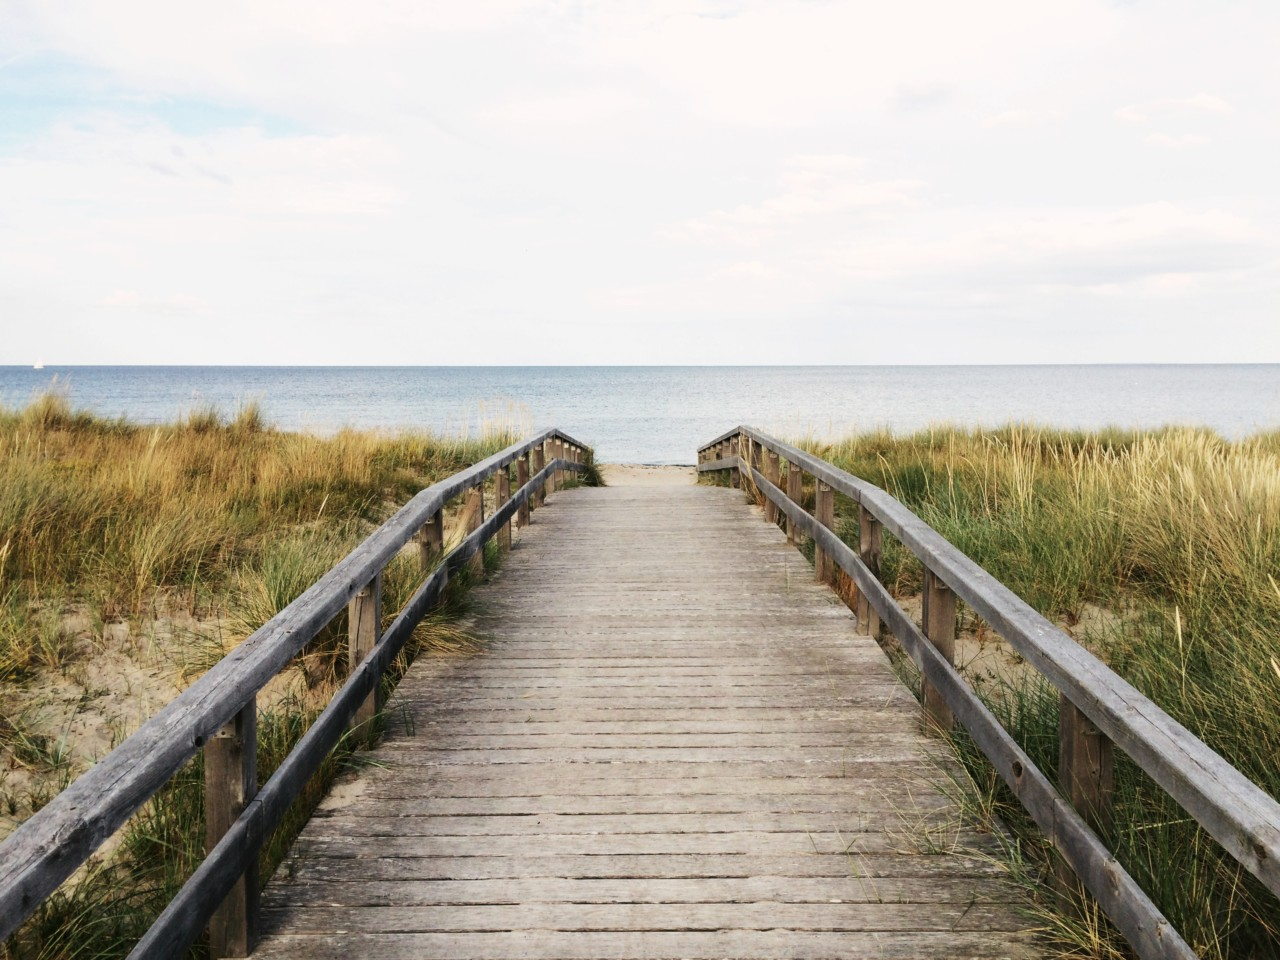 anton-sharov-boardwalk-beach-gronne-grep-unsplash